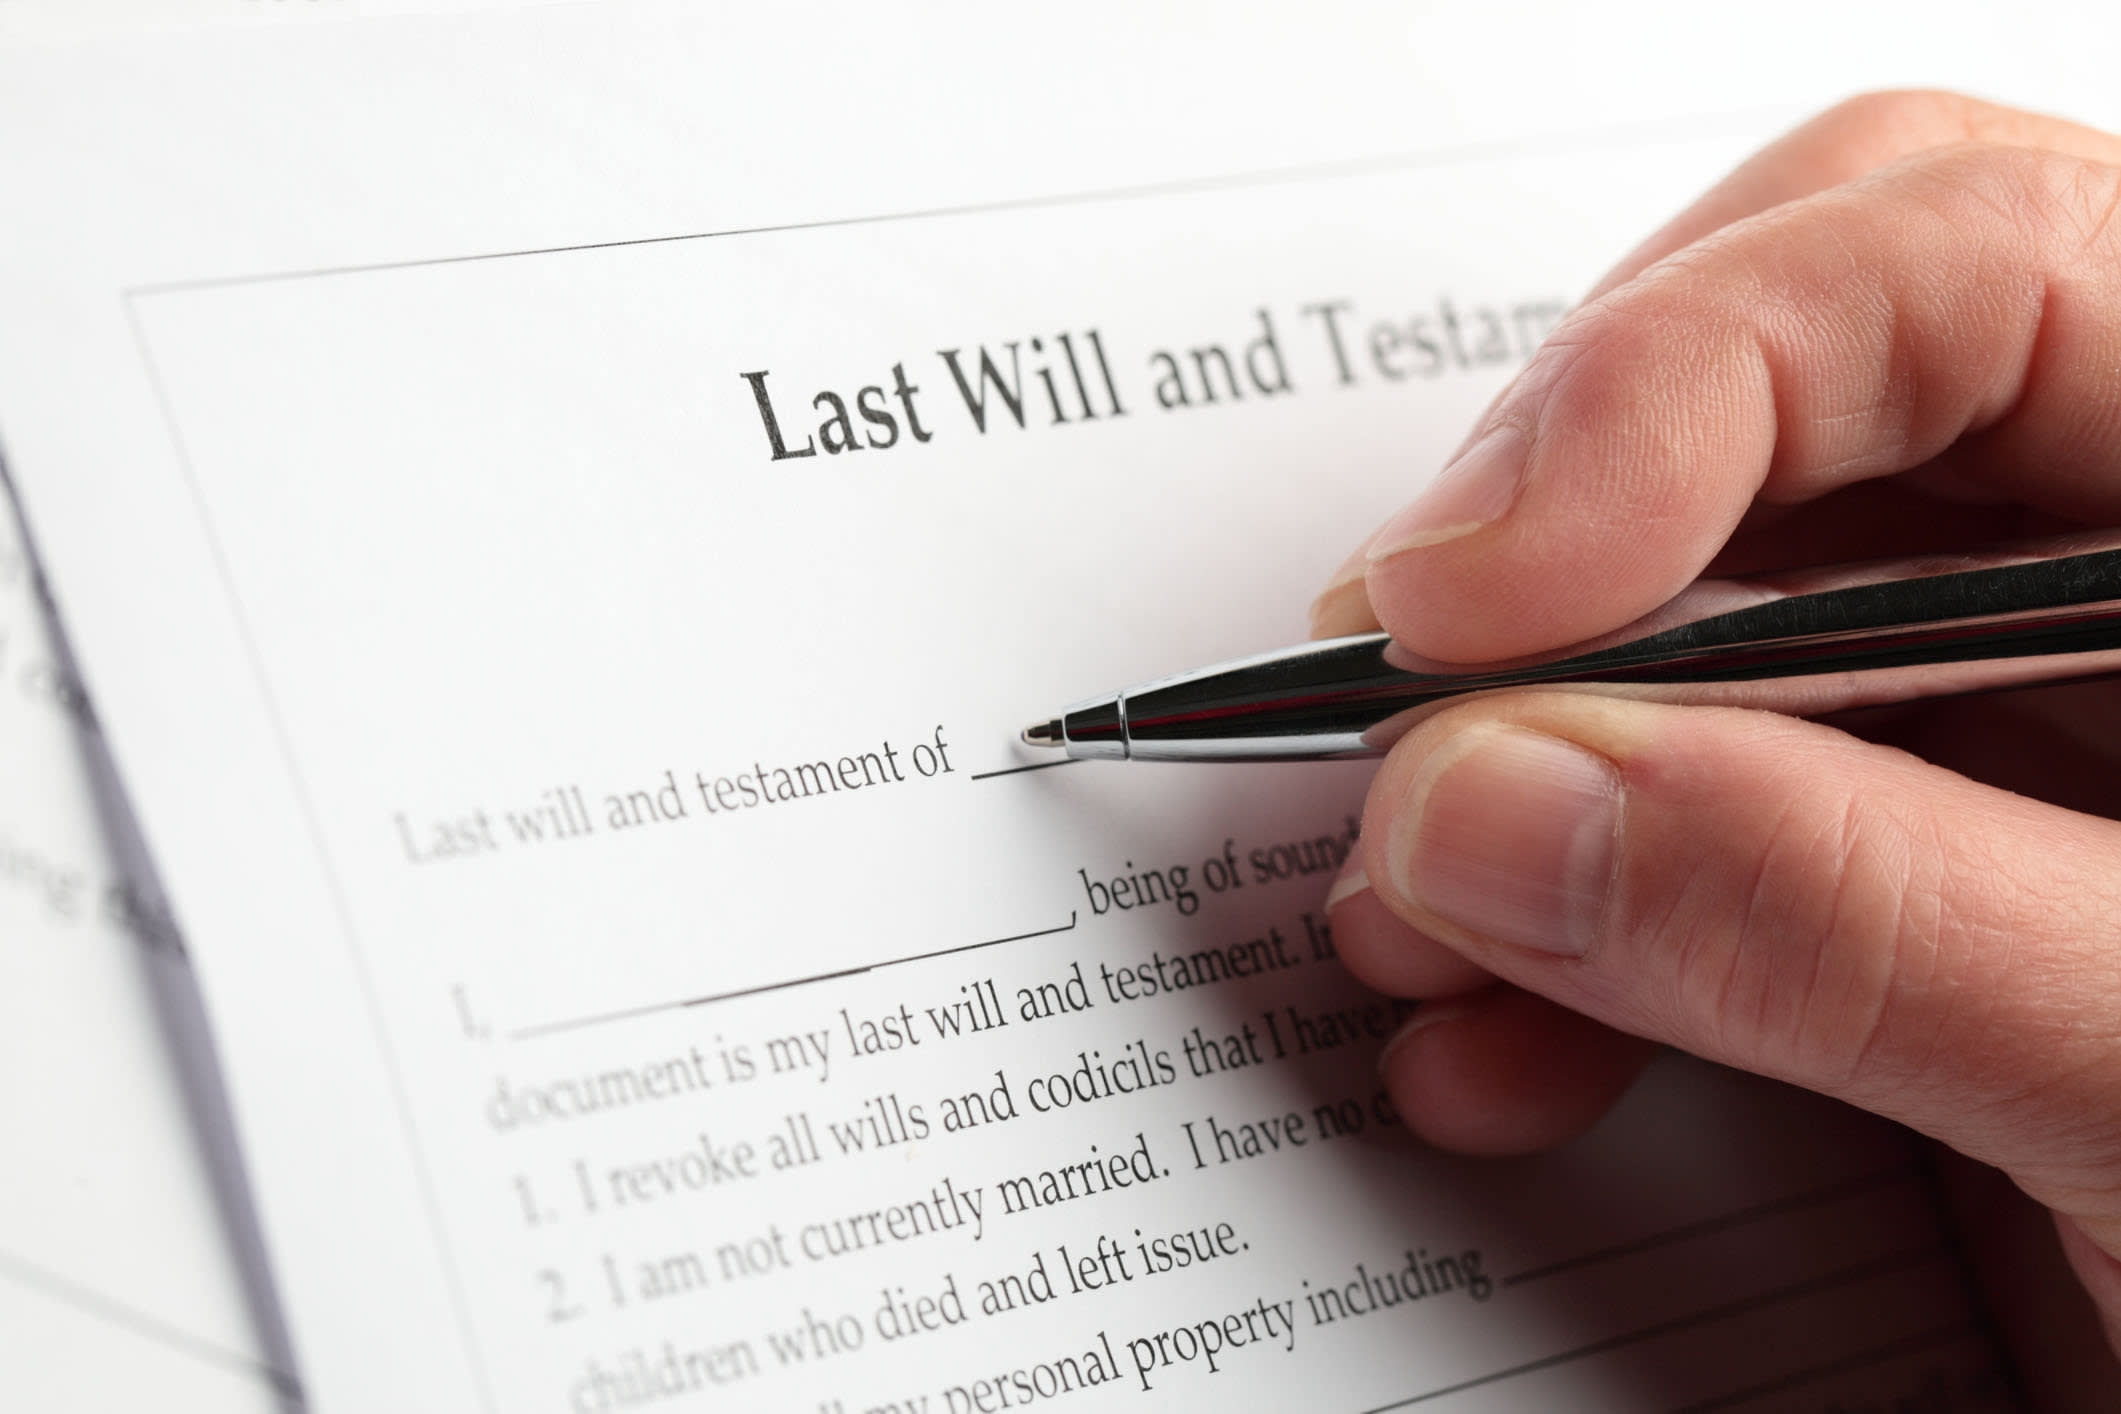 Interest in will-writing 'rockets' among advisers